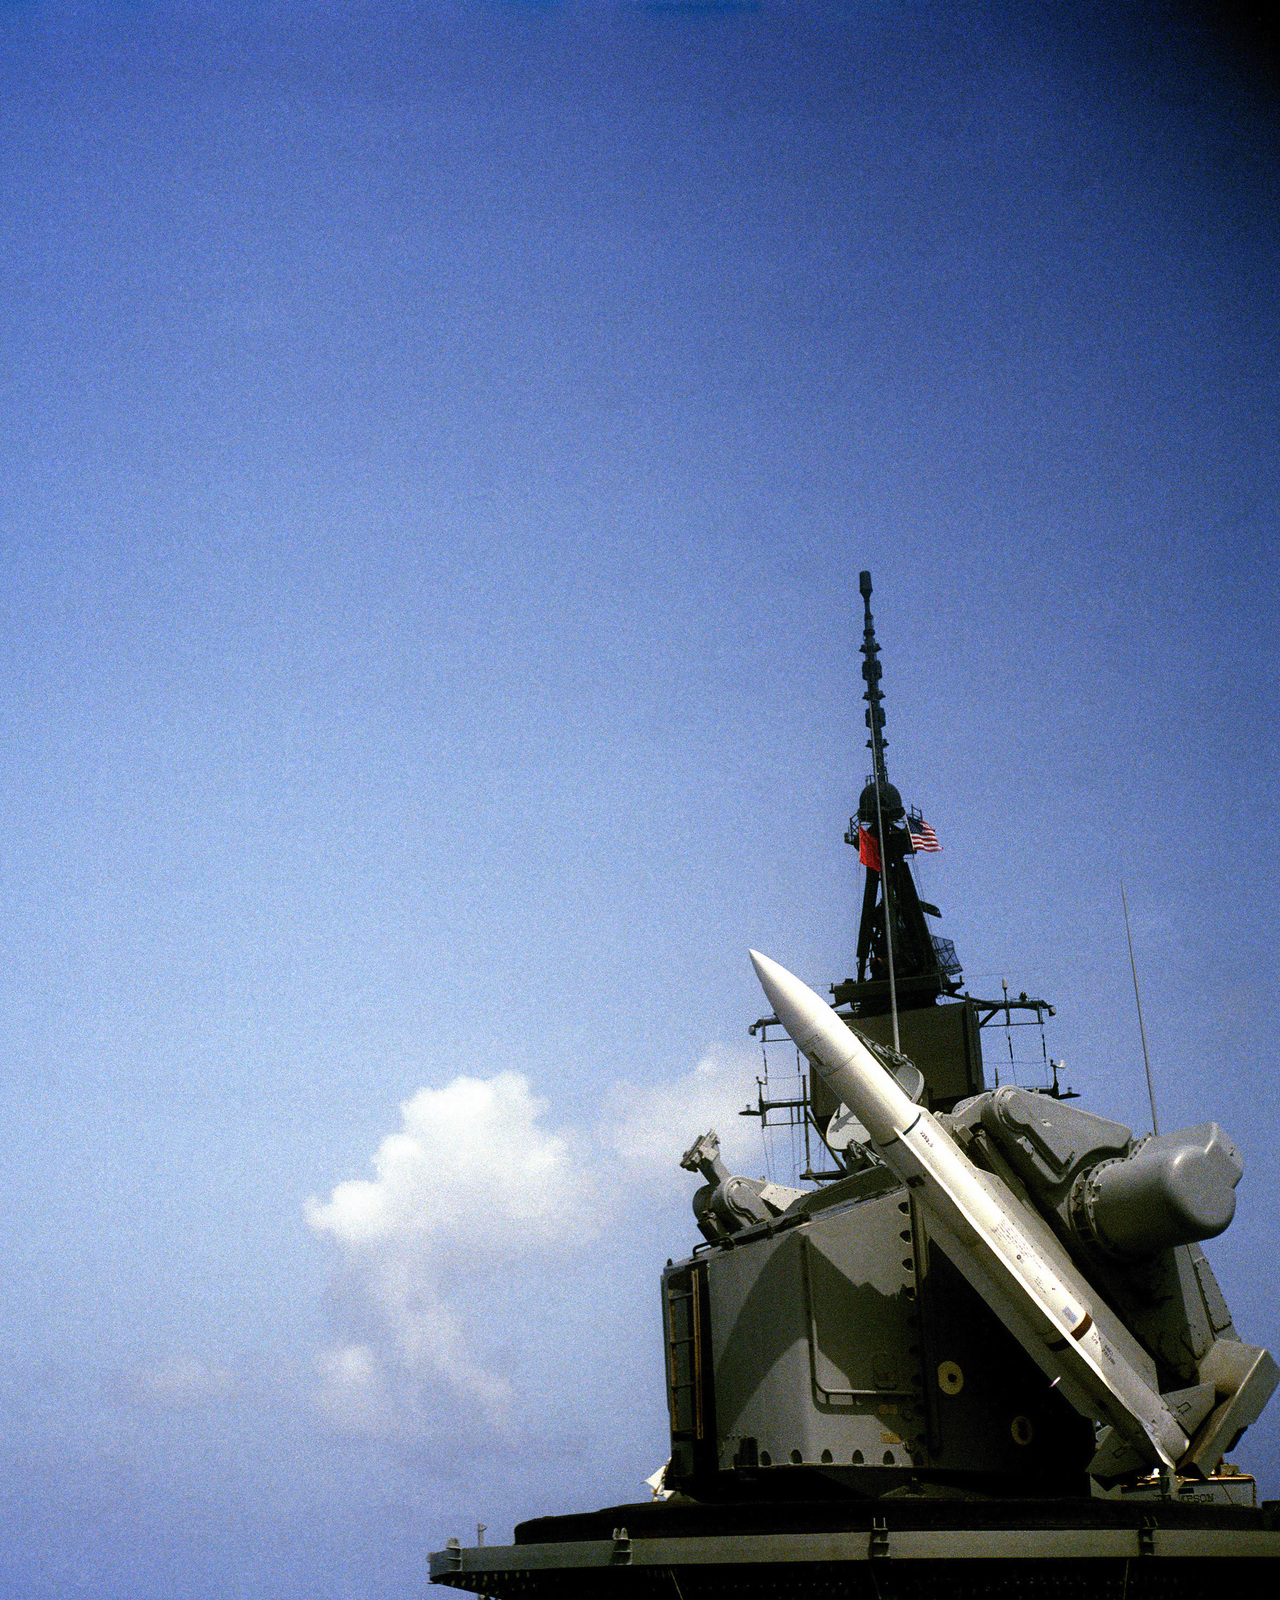 An SM-1 Standard missile is launched from the guided missile destroyer USS SAMPSON (DDG 10) near the Atlantic Fleet Weapons Training Facility (ATWTR), Puerto Rico